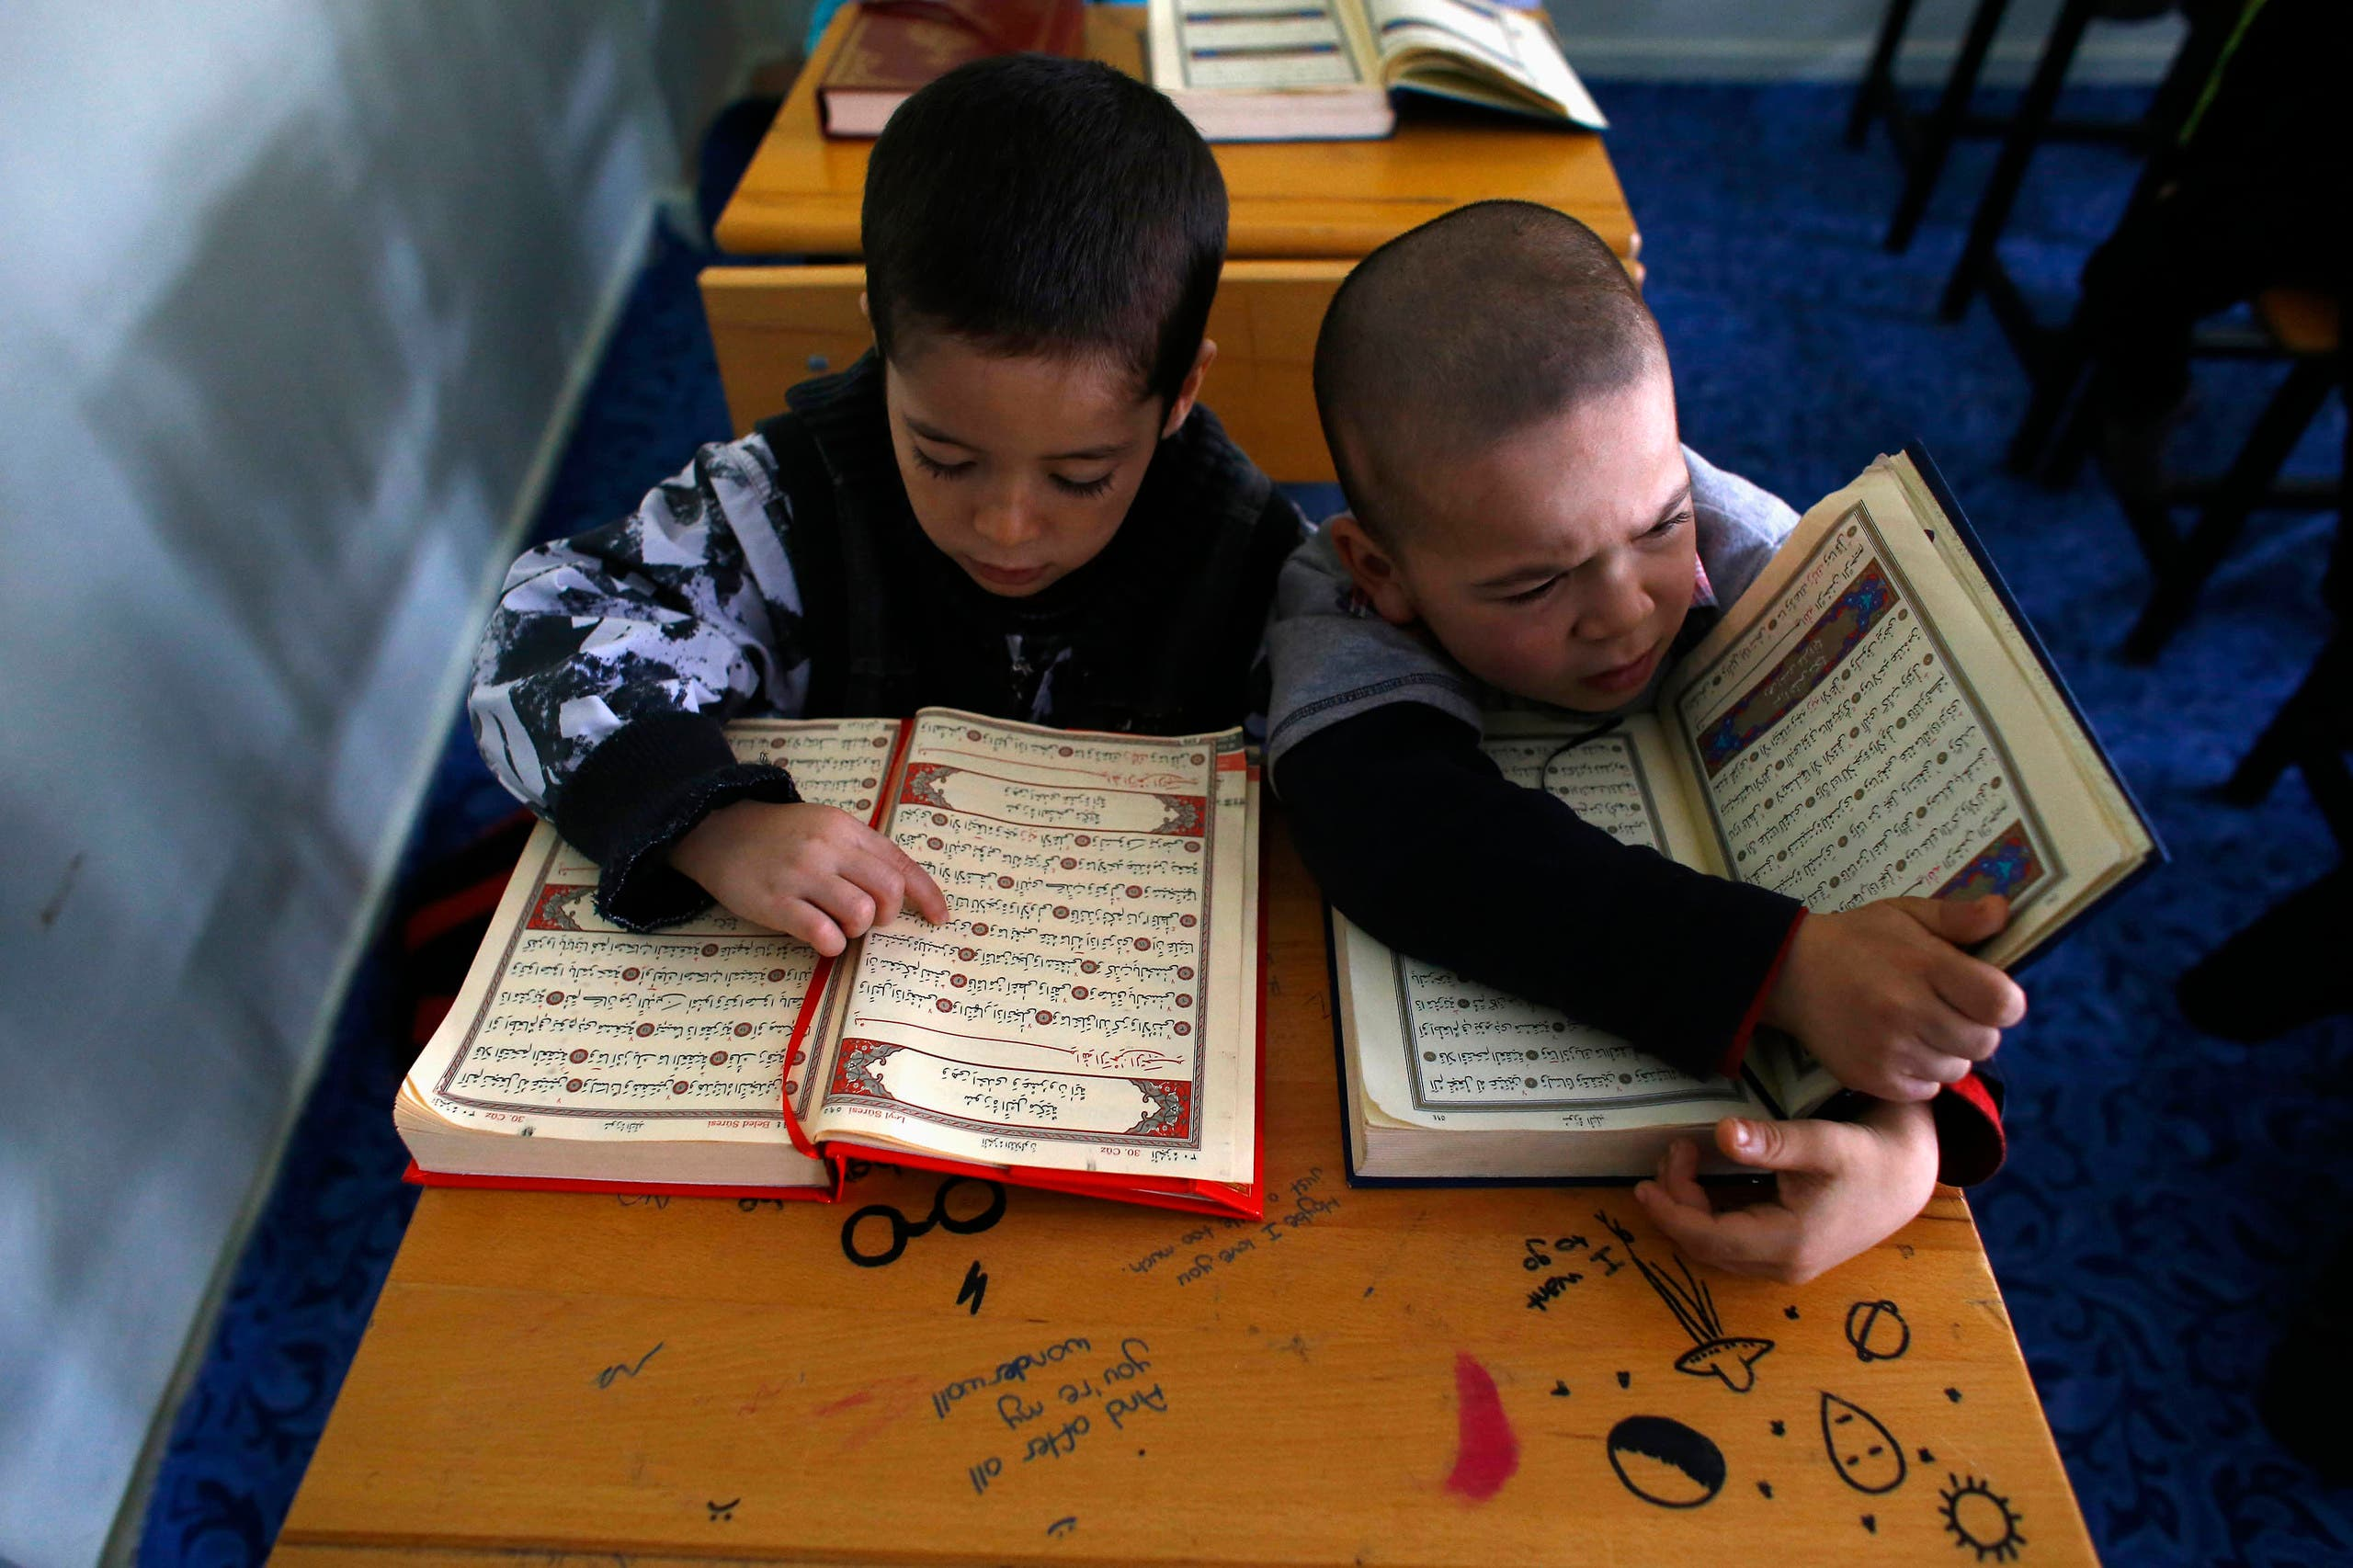 Uighur refugee boys read the Koran where they are housed in a gated complex in the central city of Kayseri, Turkey, February 11, 2015. (File photo: AP)